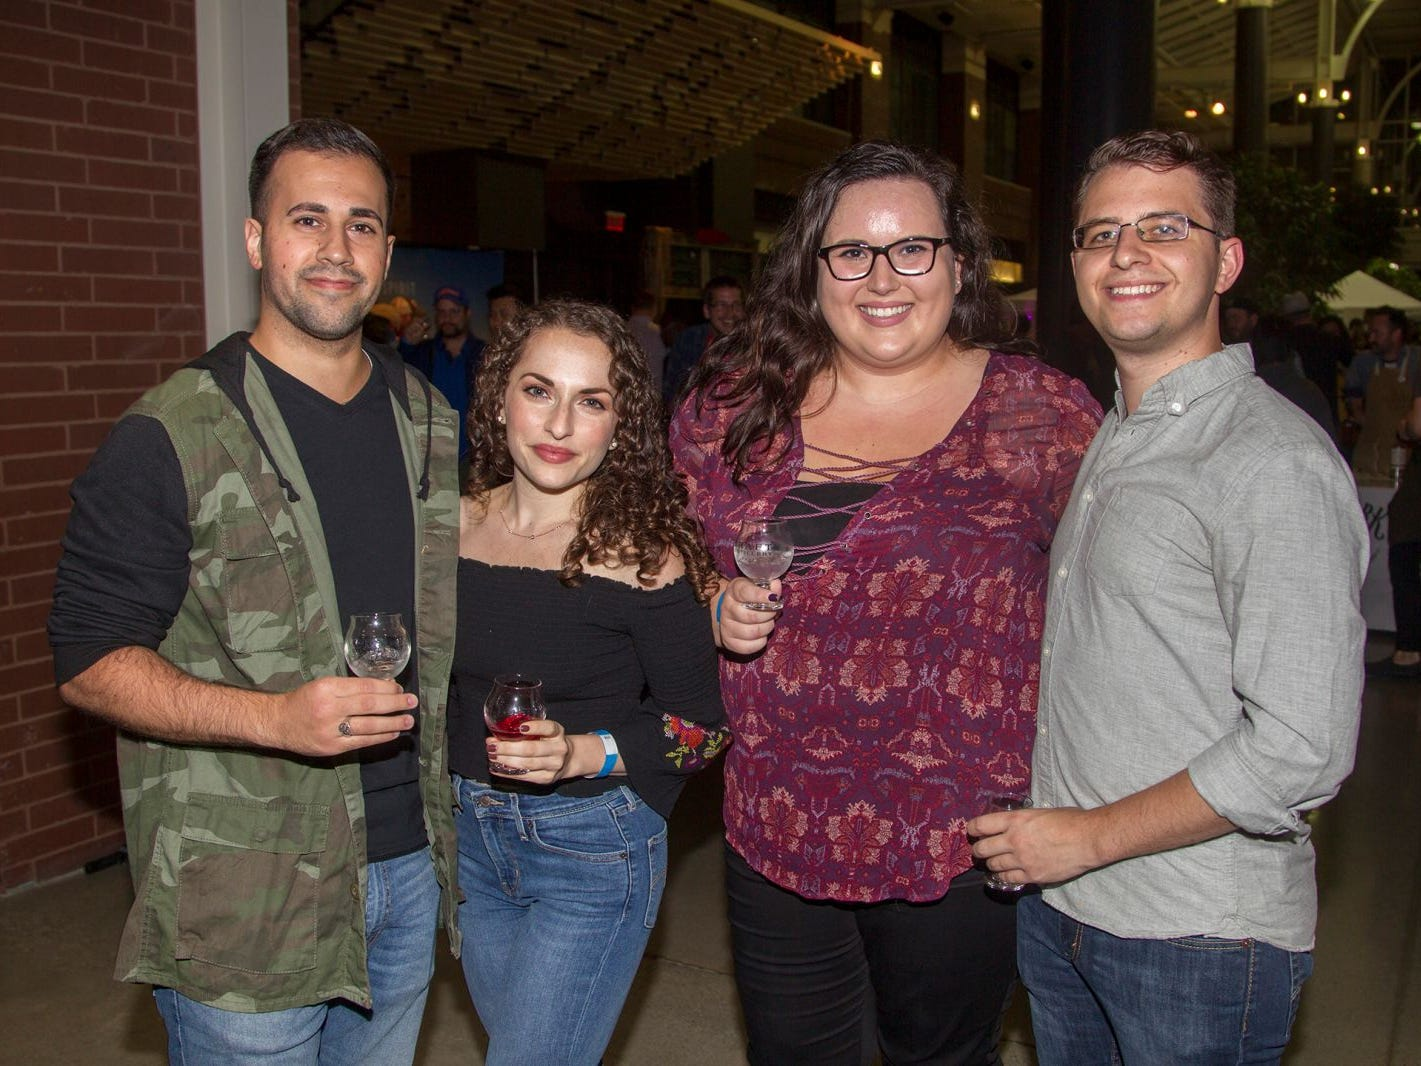 Michael, Stella, Camella, Larry. Jersey City Craft Distillery Fest at the Harborside Atrium featured more than 100 styles of spirits. Guests had the chance to taste craft-distilled spirits from moonshine, rum, cognac, whiskey, vodka, gin, tequila and more. 09/08/2018